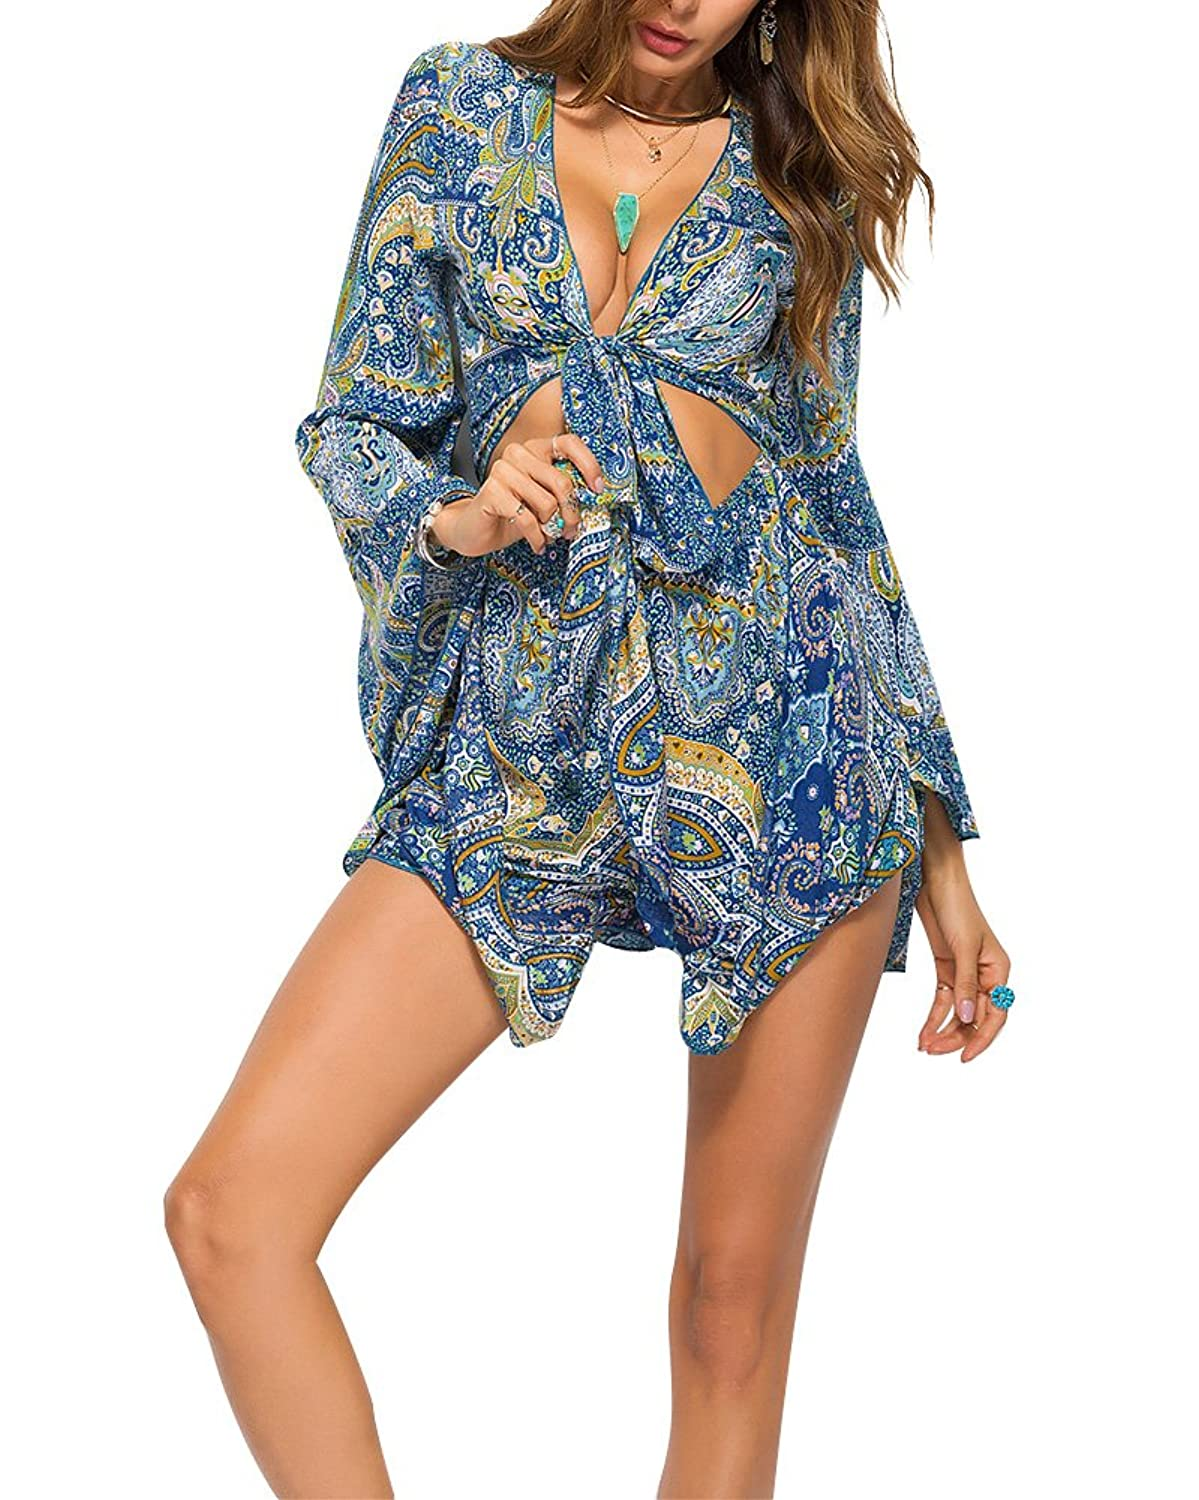 Acelyn Women's Boho V Neck Print Romper Playsuit With Long Flare Sleeves Jumpsuits